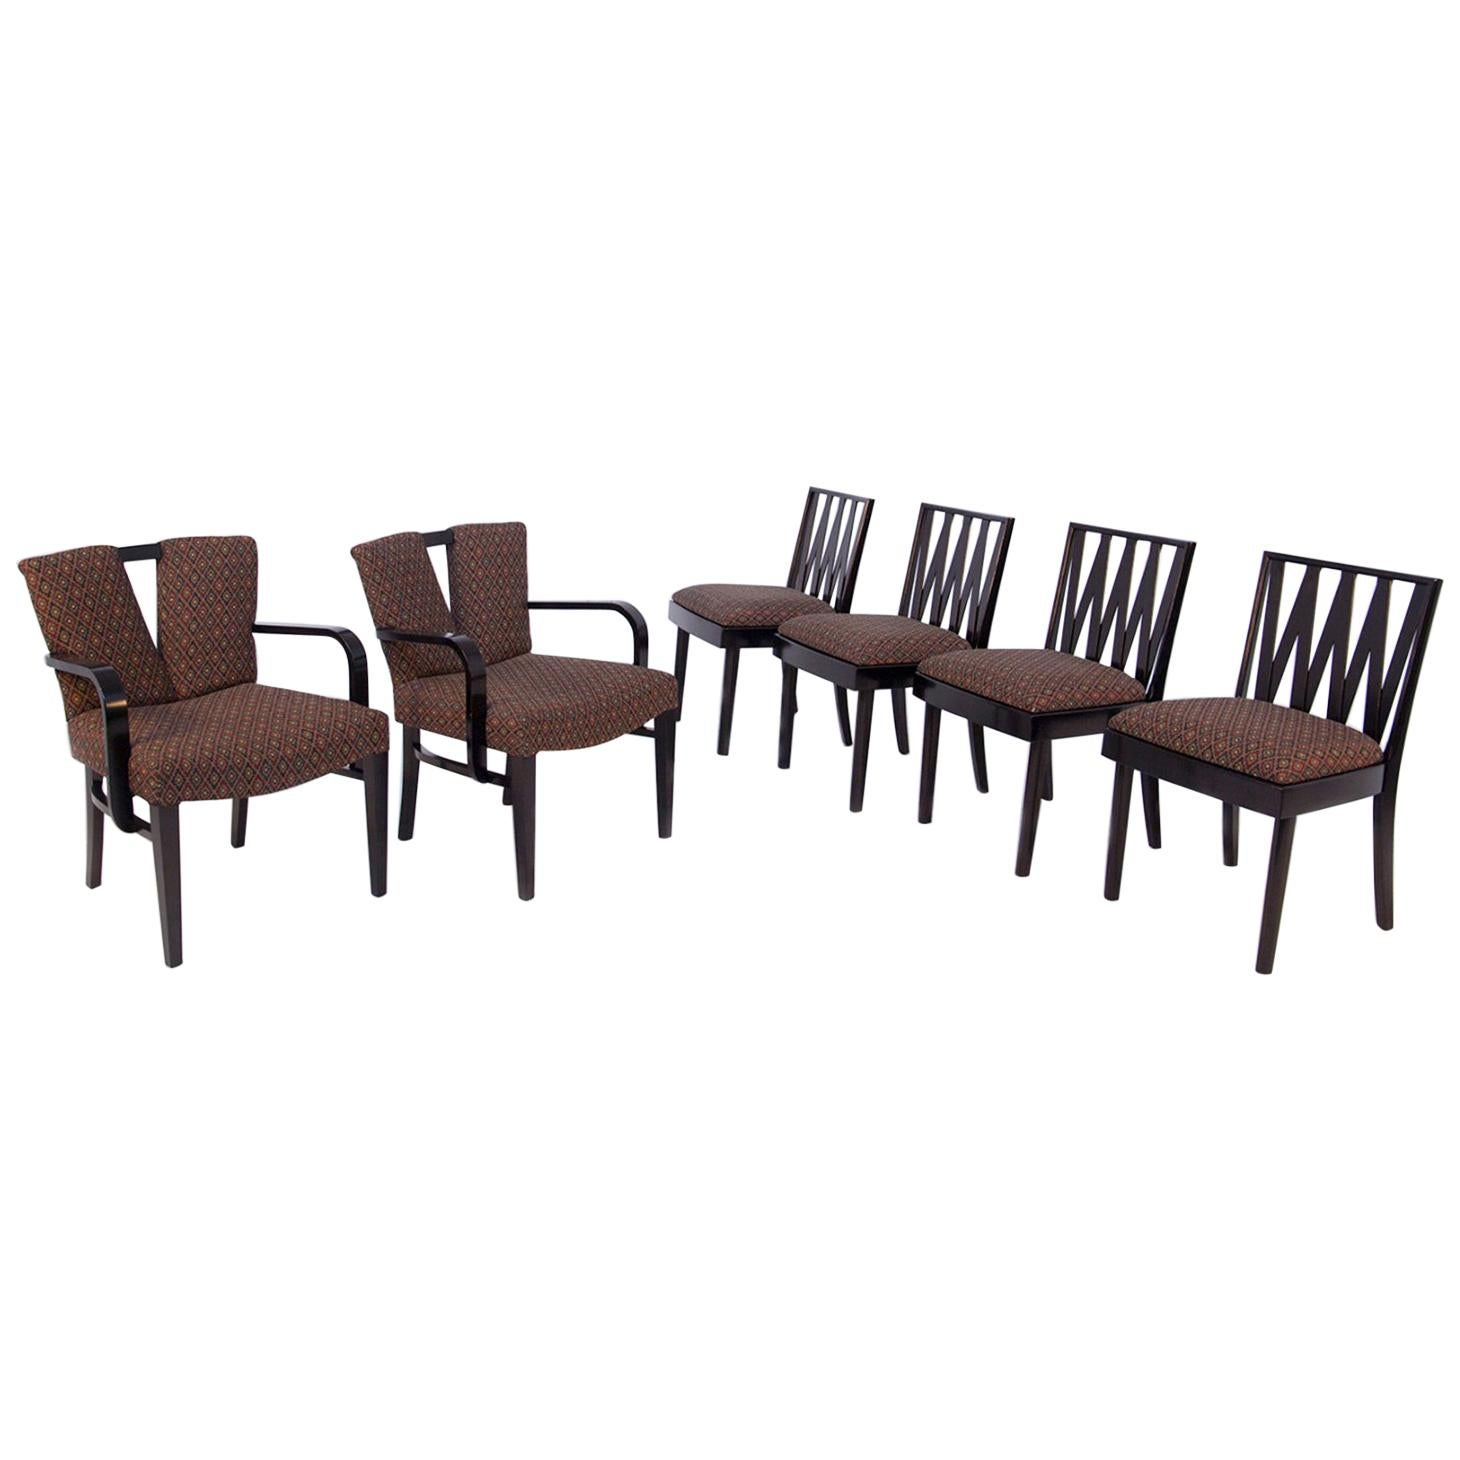 """Six Paul Frankl """"Corset"""" and """"Zig Zag"""" Chairs for Johnson Furniture"""